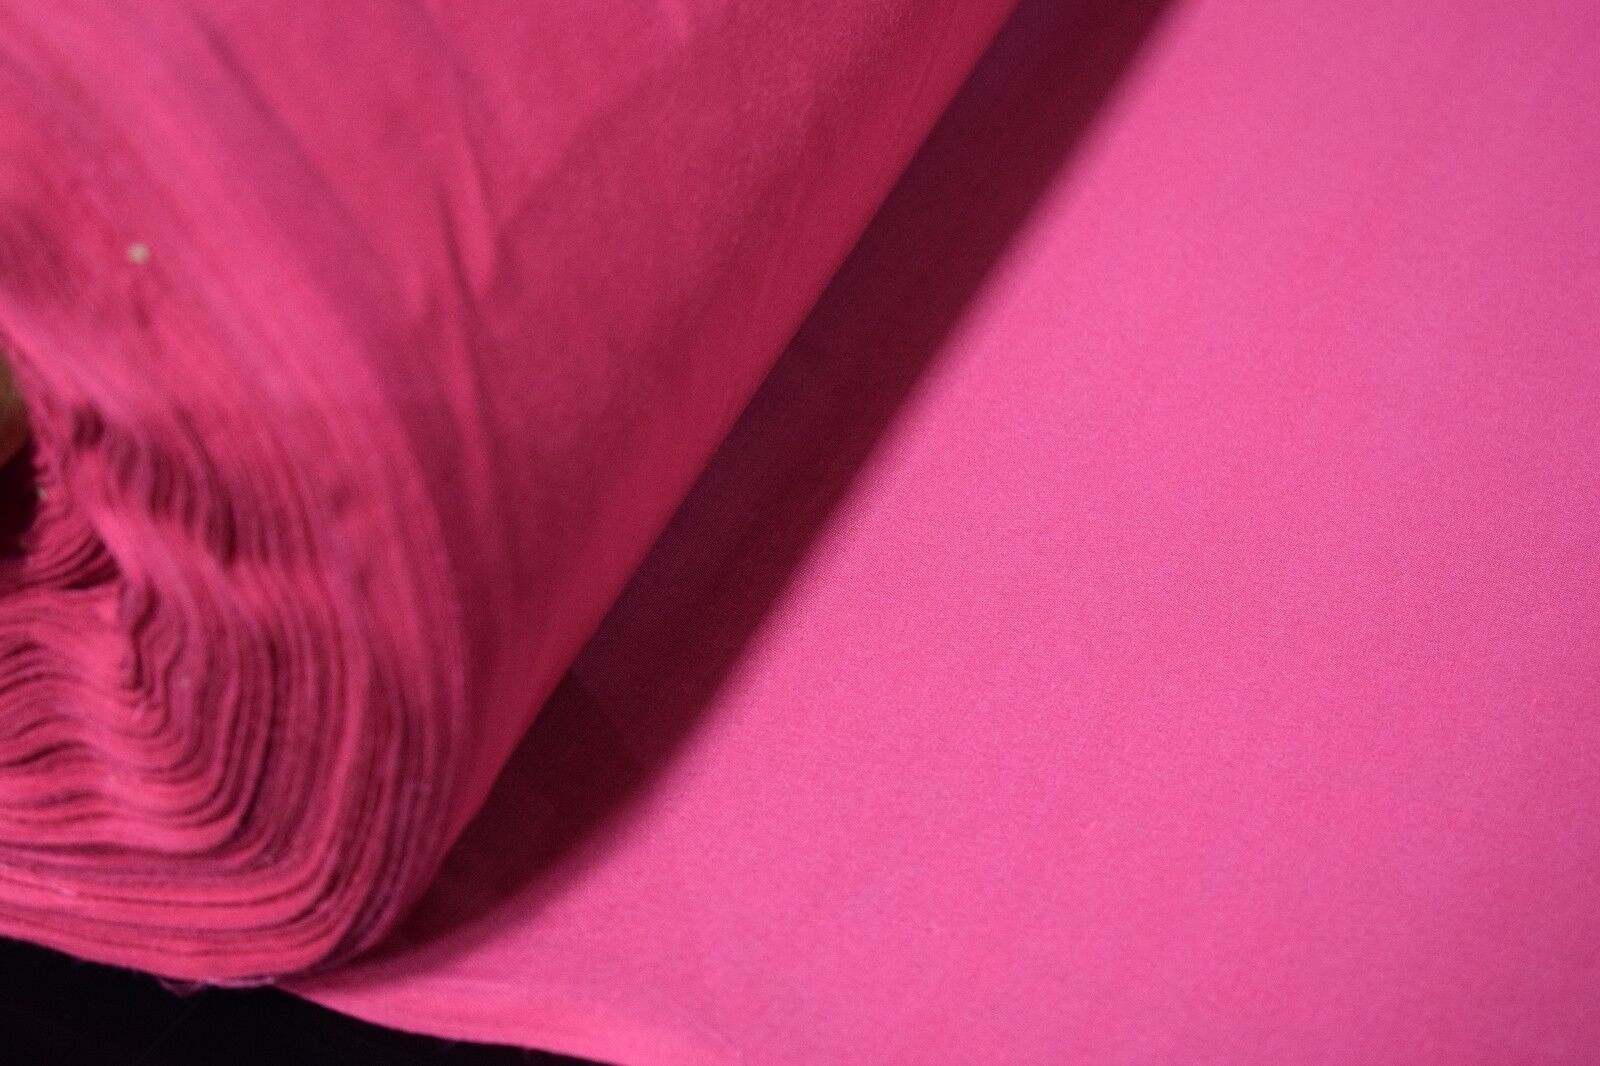 Quilt Fabric Fuchsia Pink Apparel Upholstery Solid Color Cra